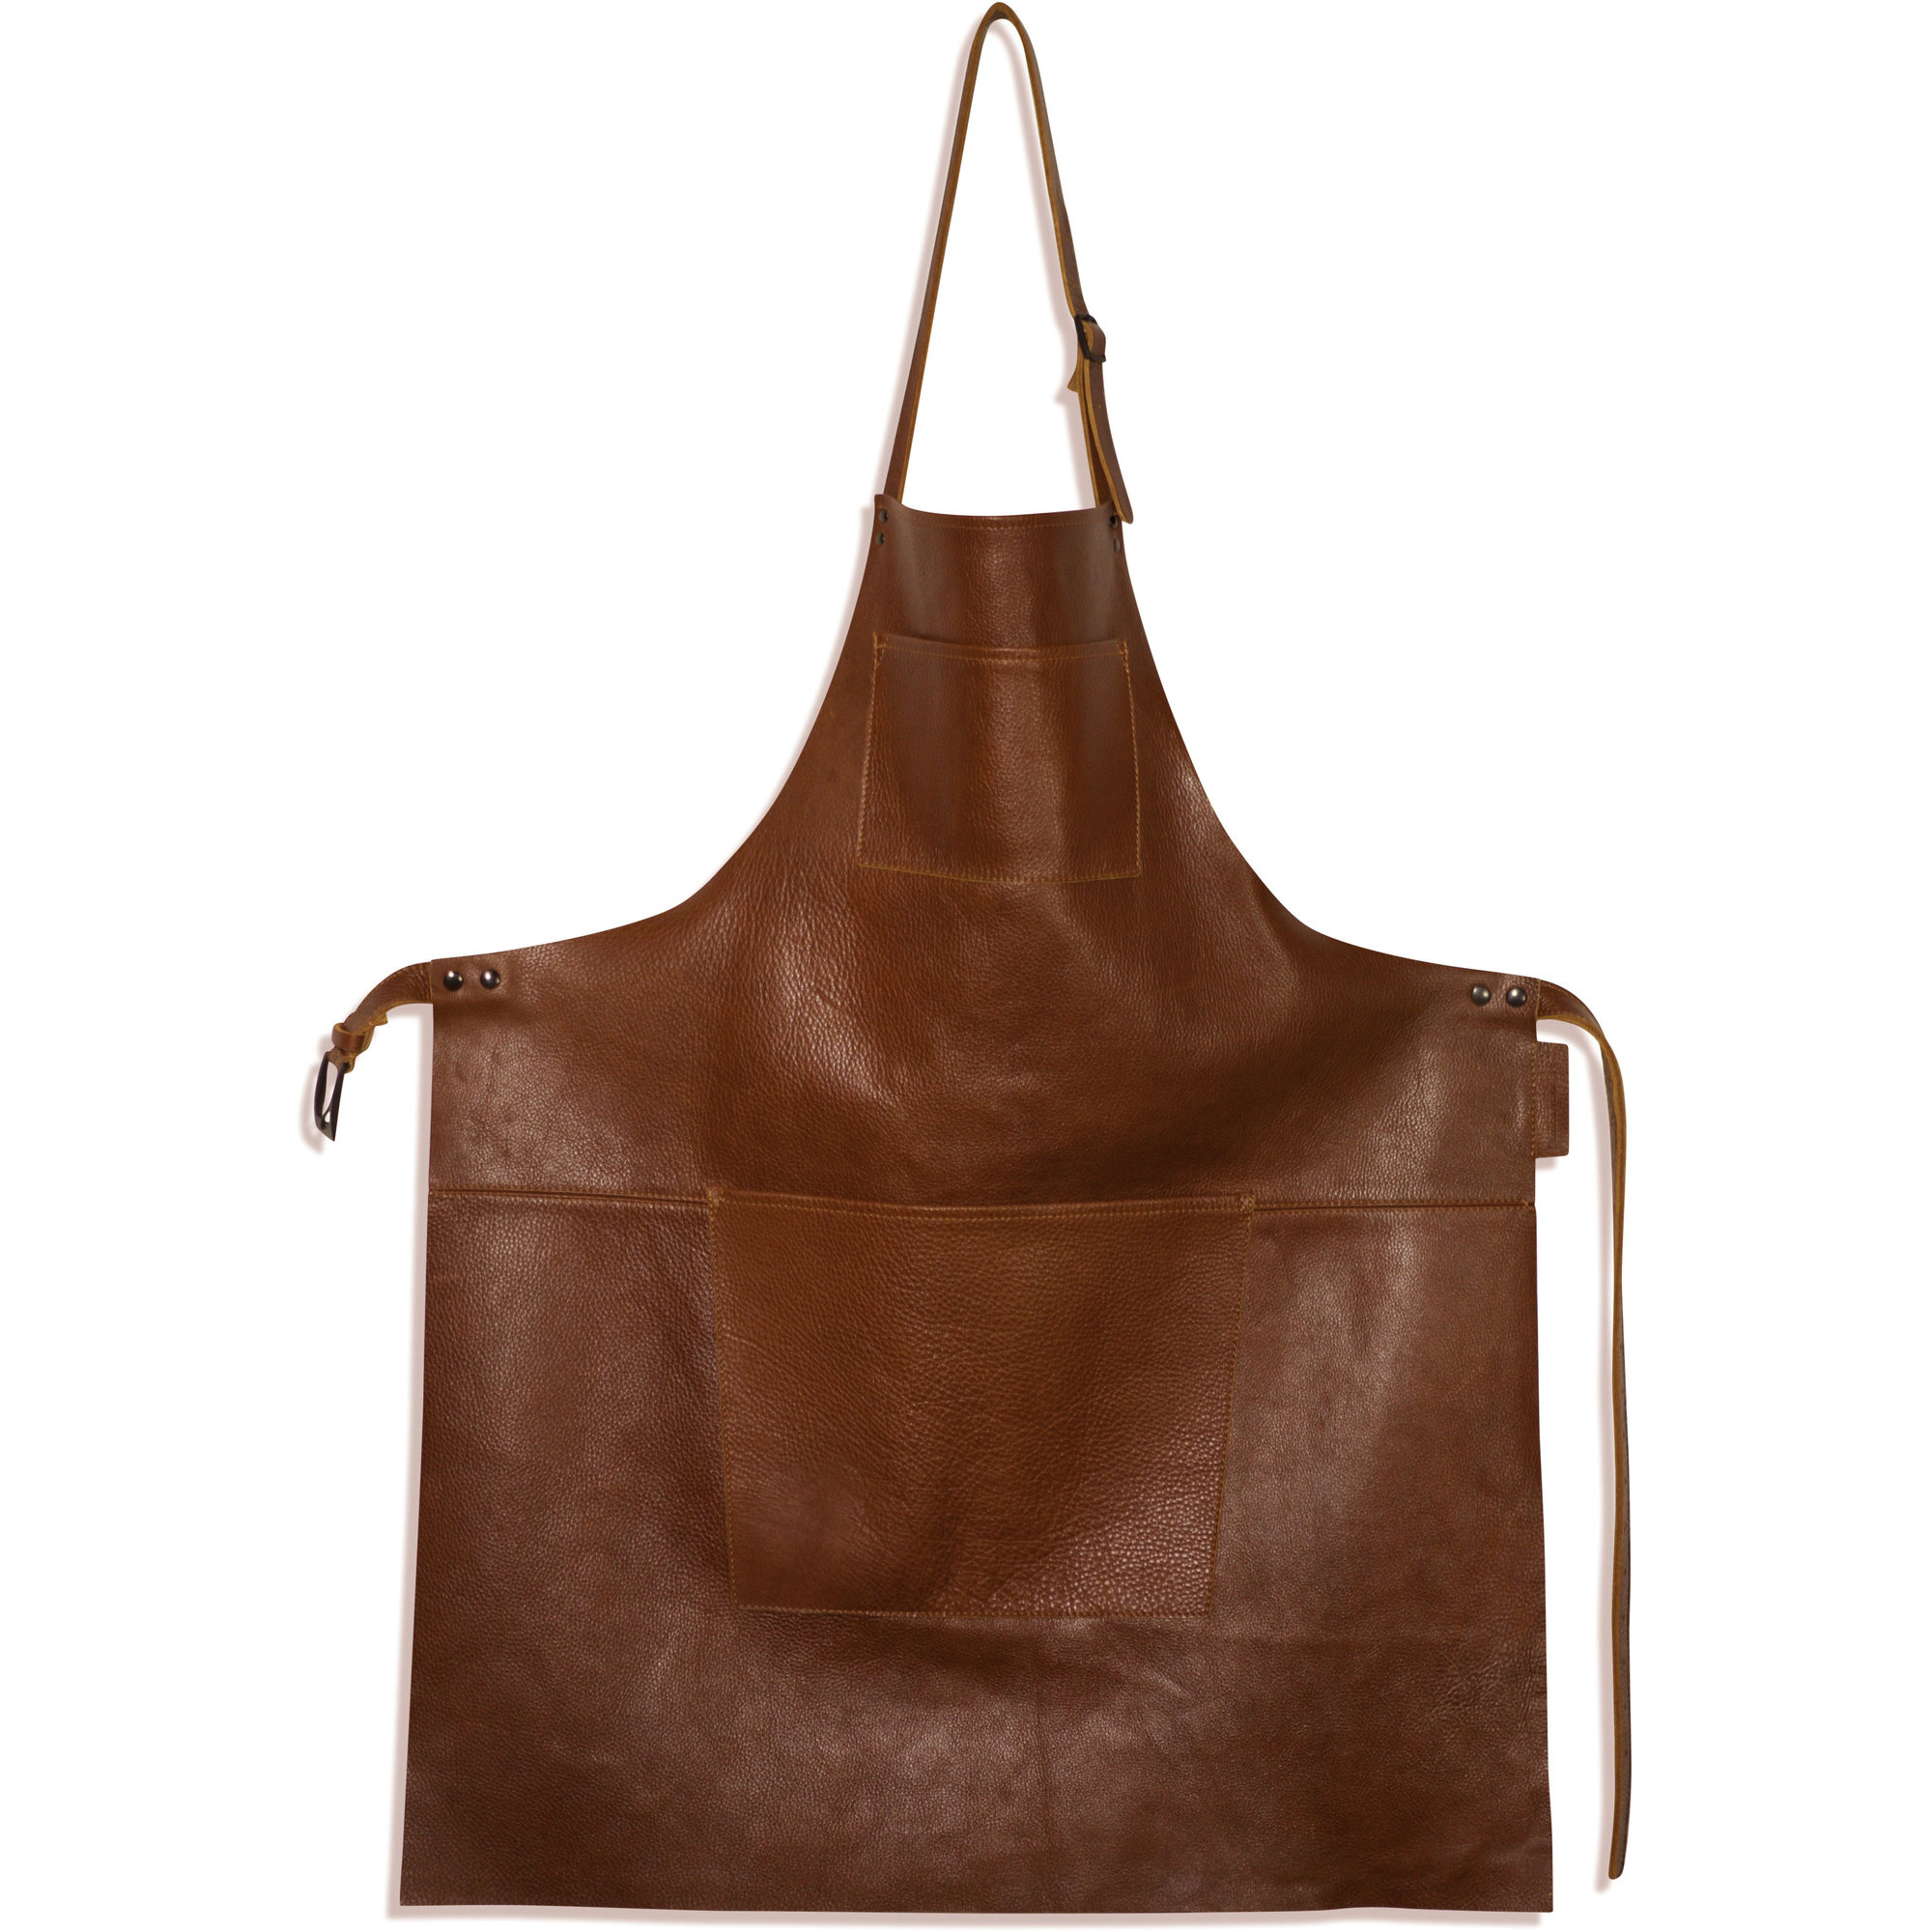 DutchDeluxes Professional Apron Classic Brown